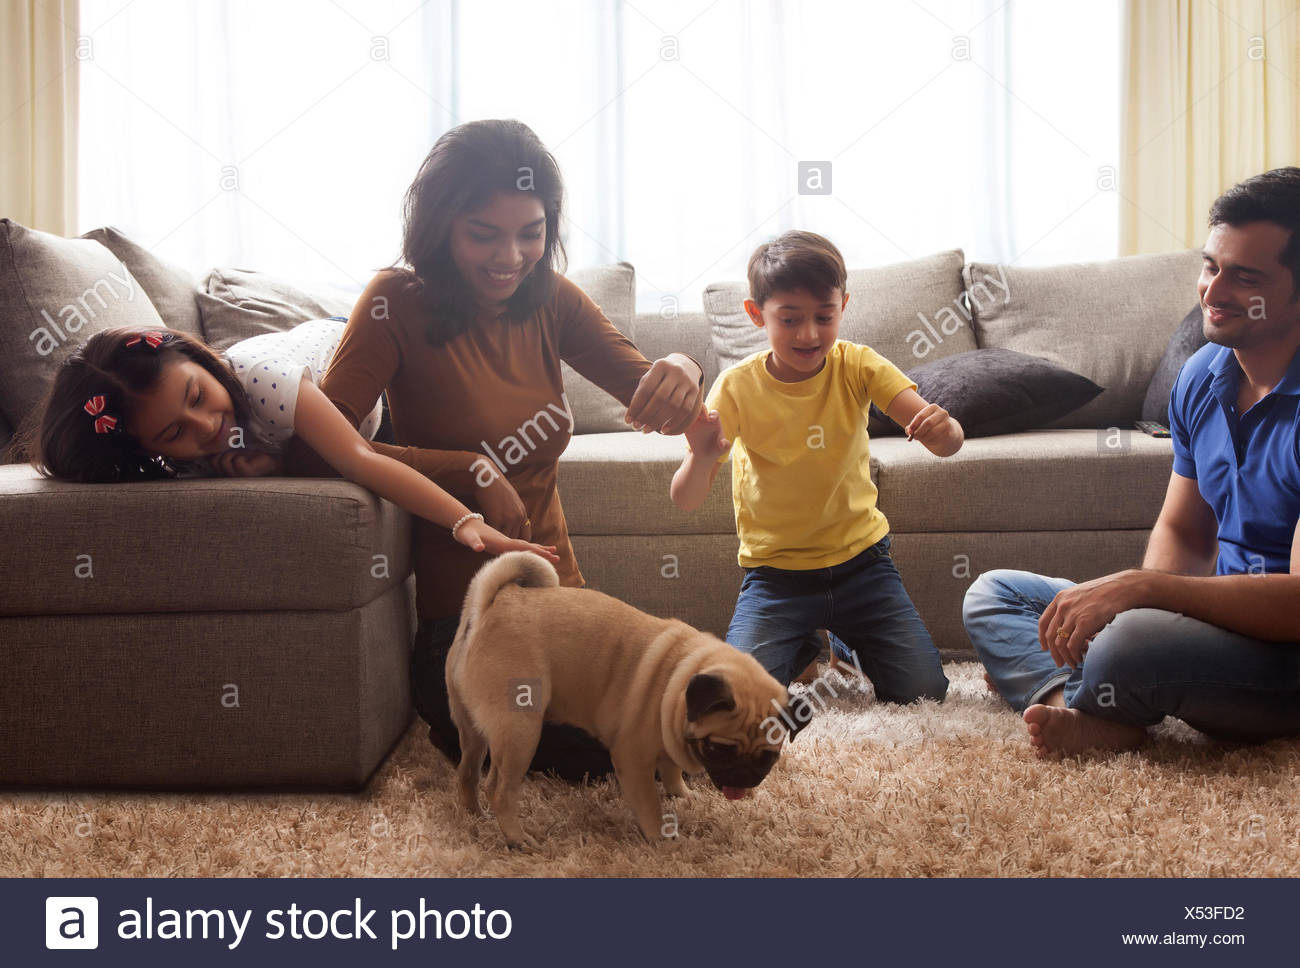 Family playing with pug on carpet - Stock Image